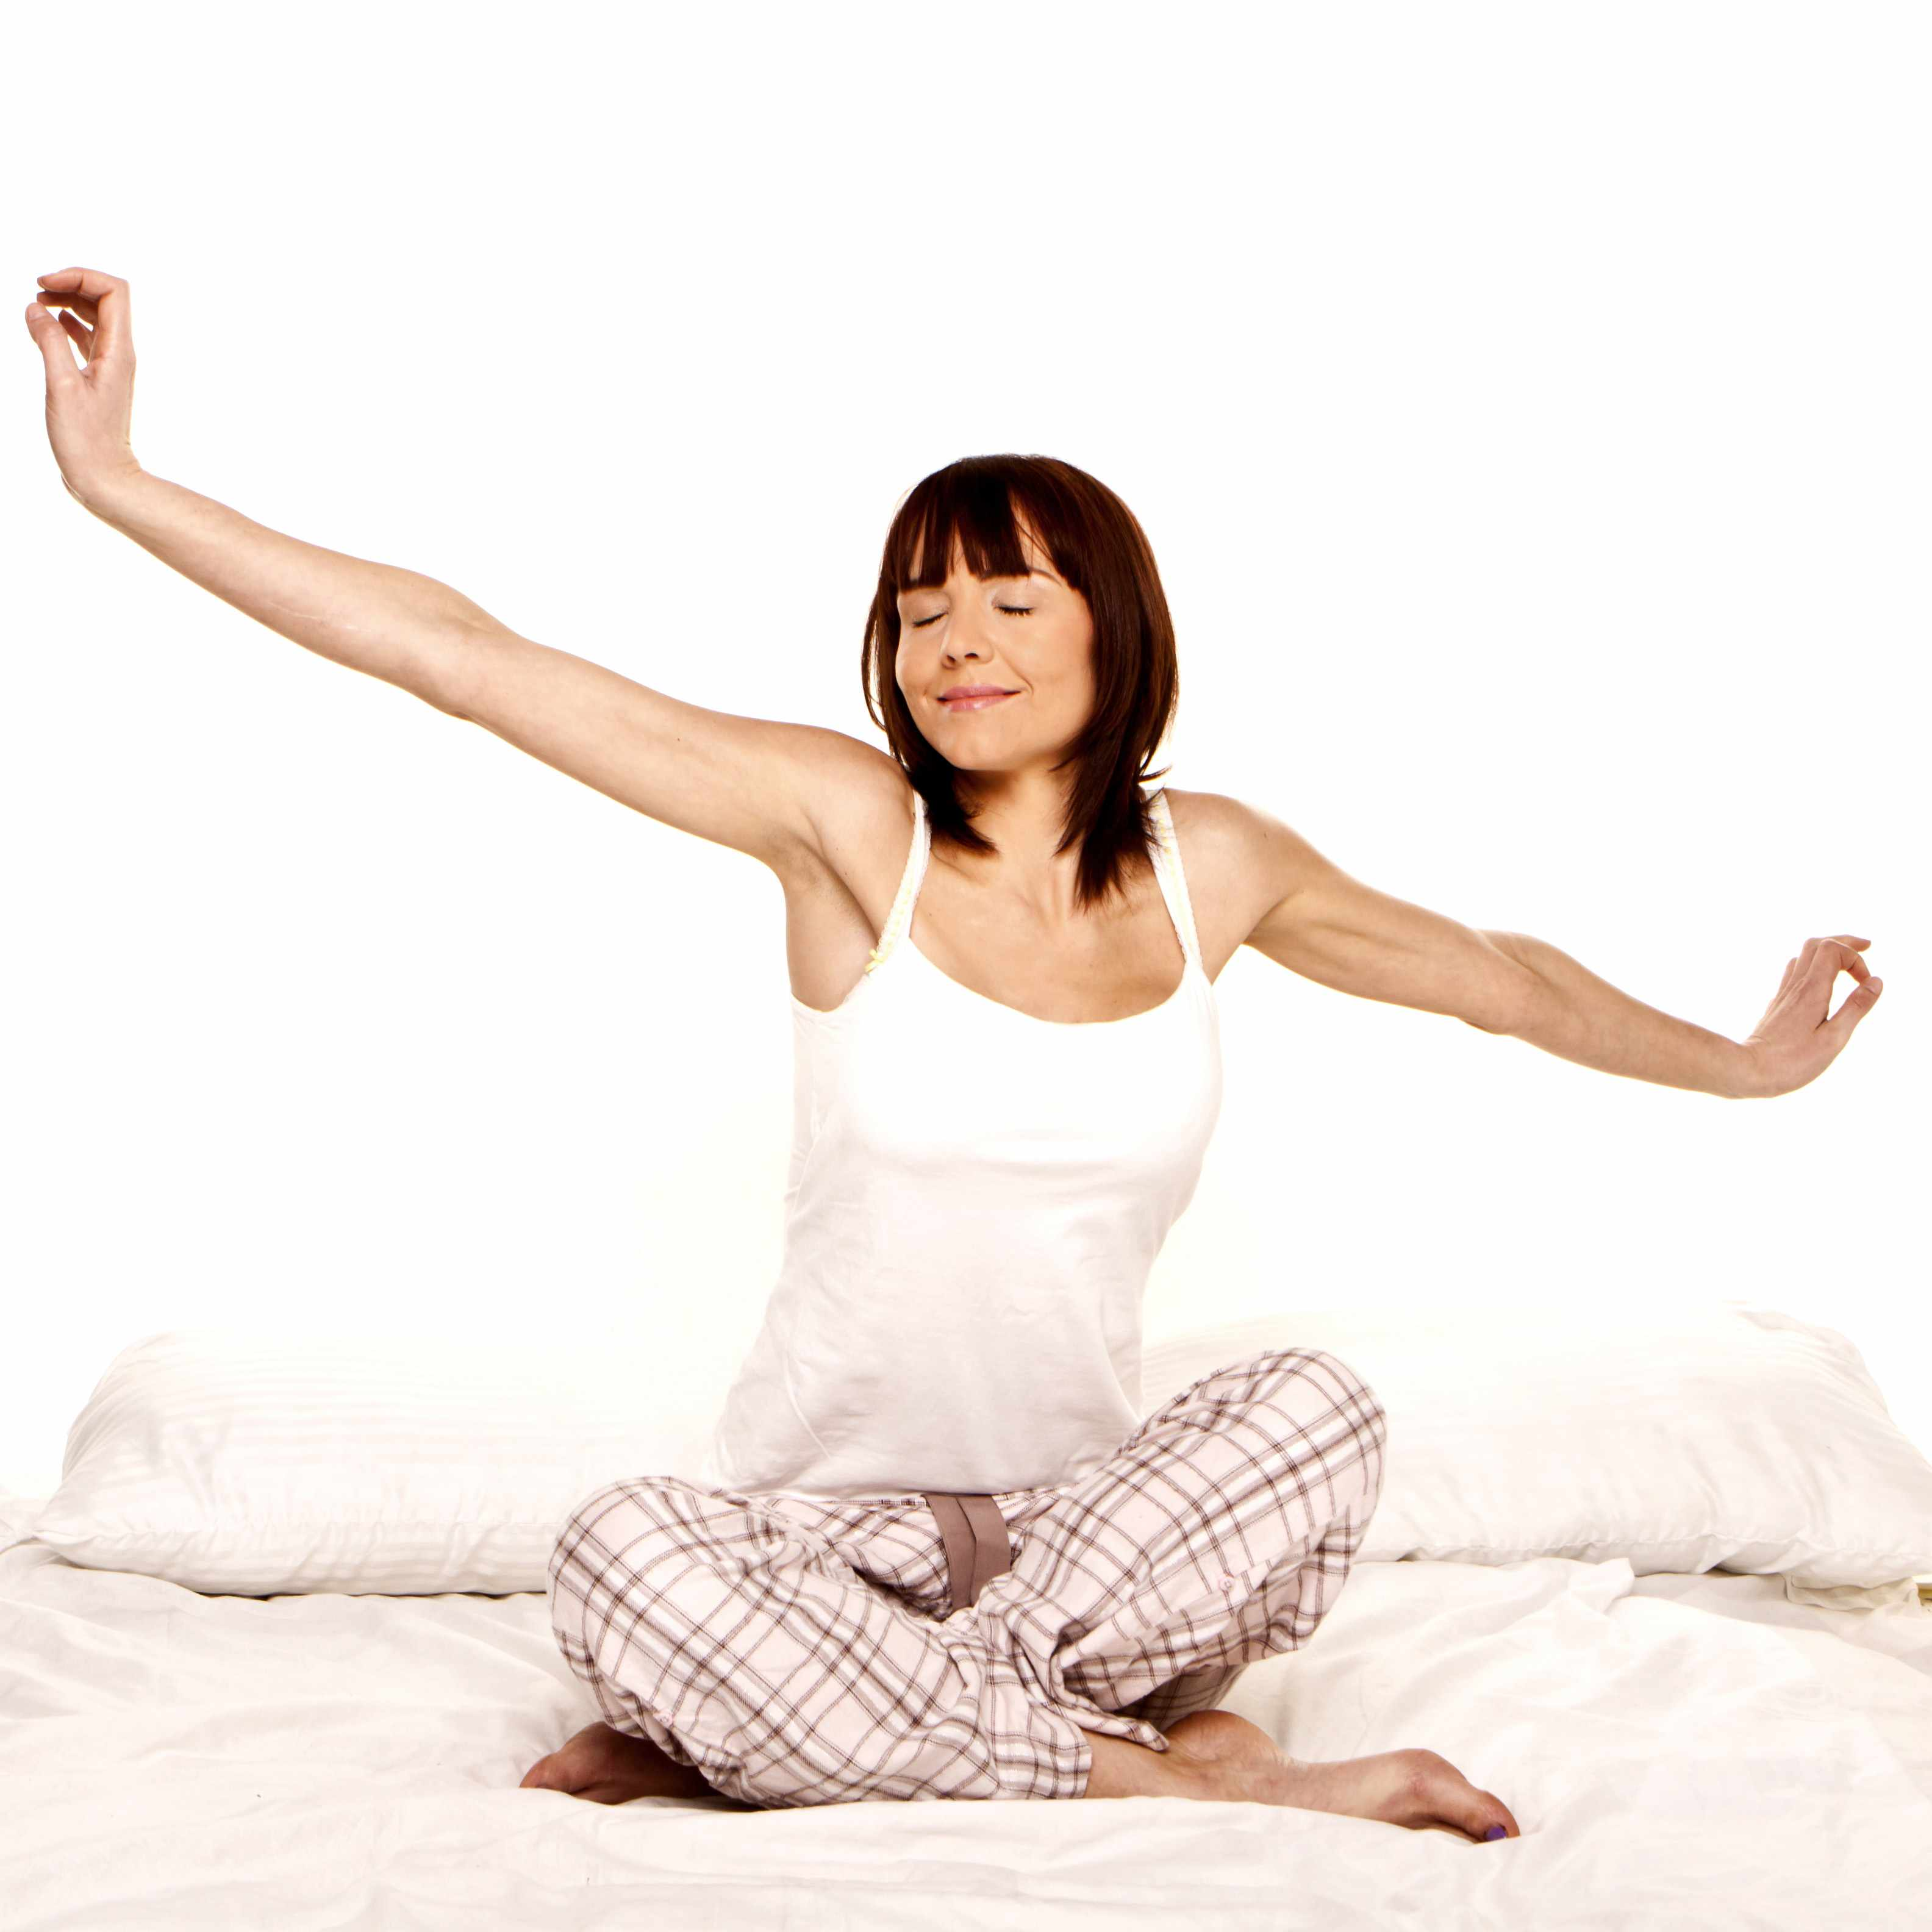 a young woman sitting on a bed in pajamas, smiling and stretching, waking up from a good night's sleep